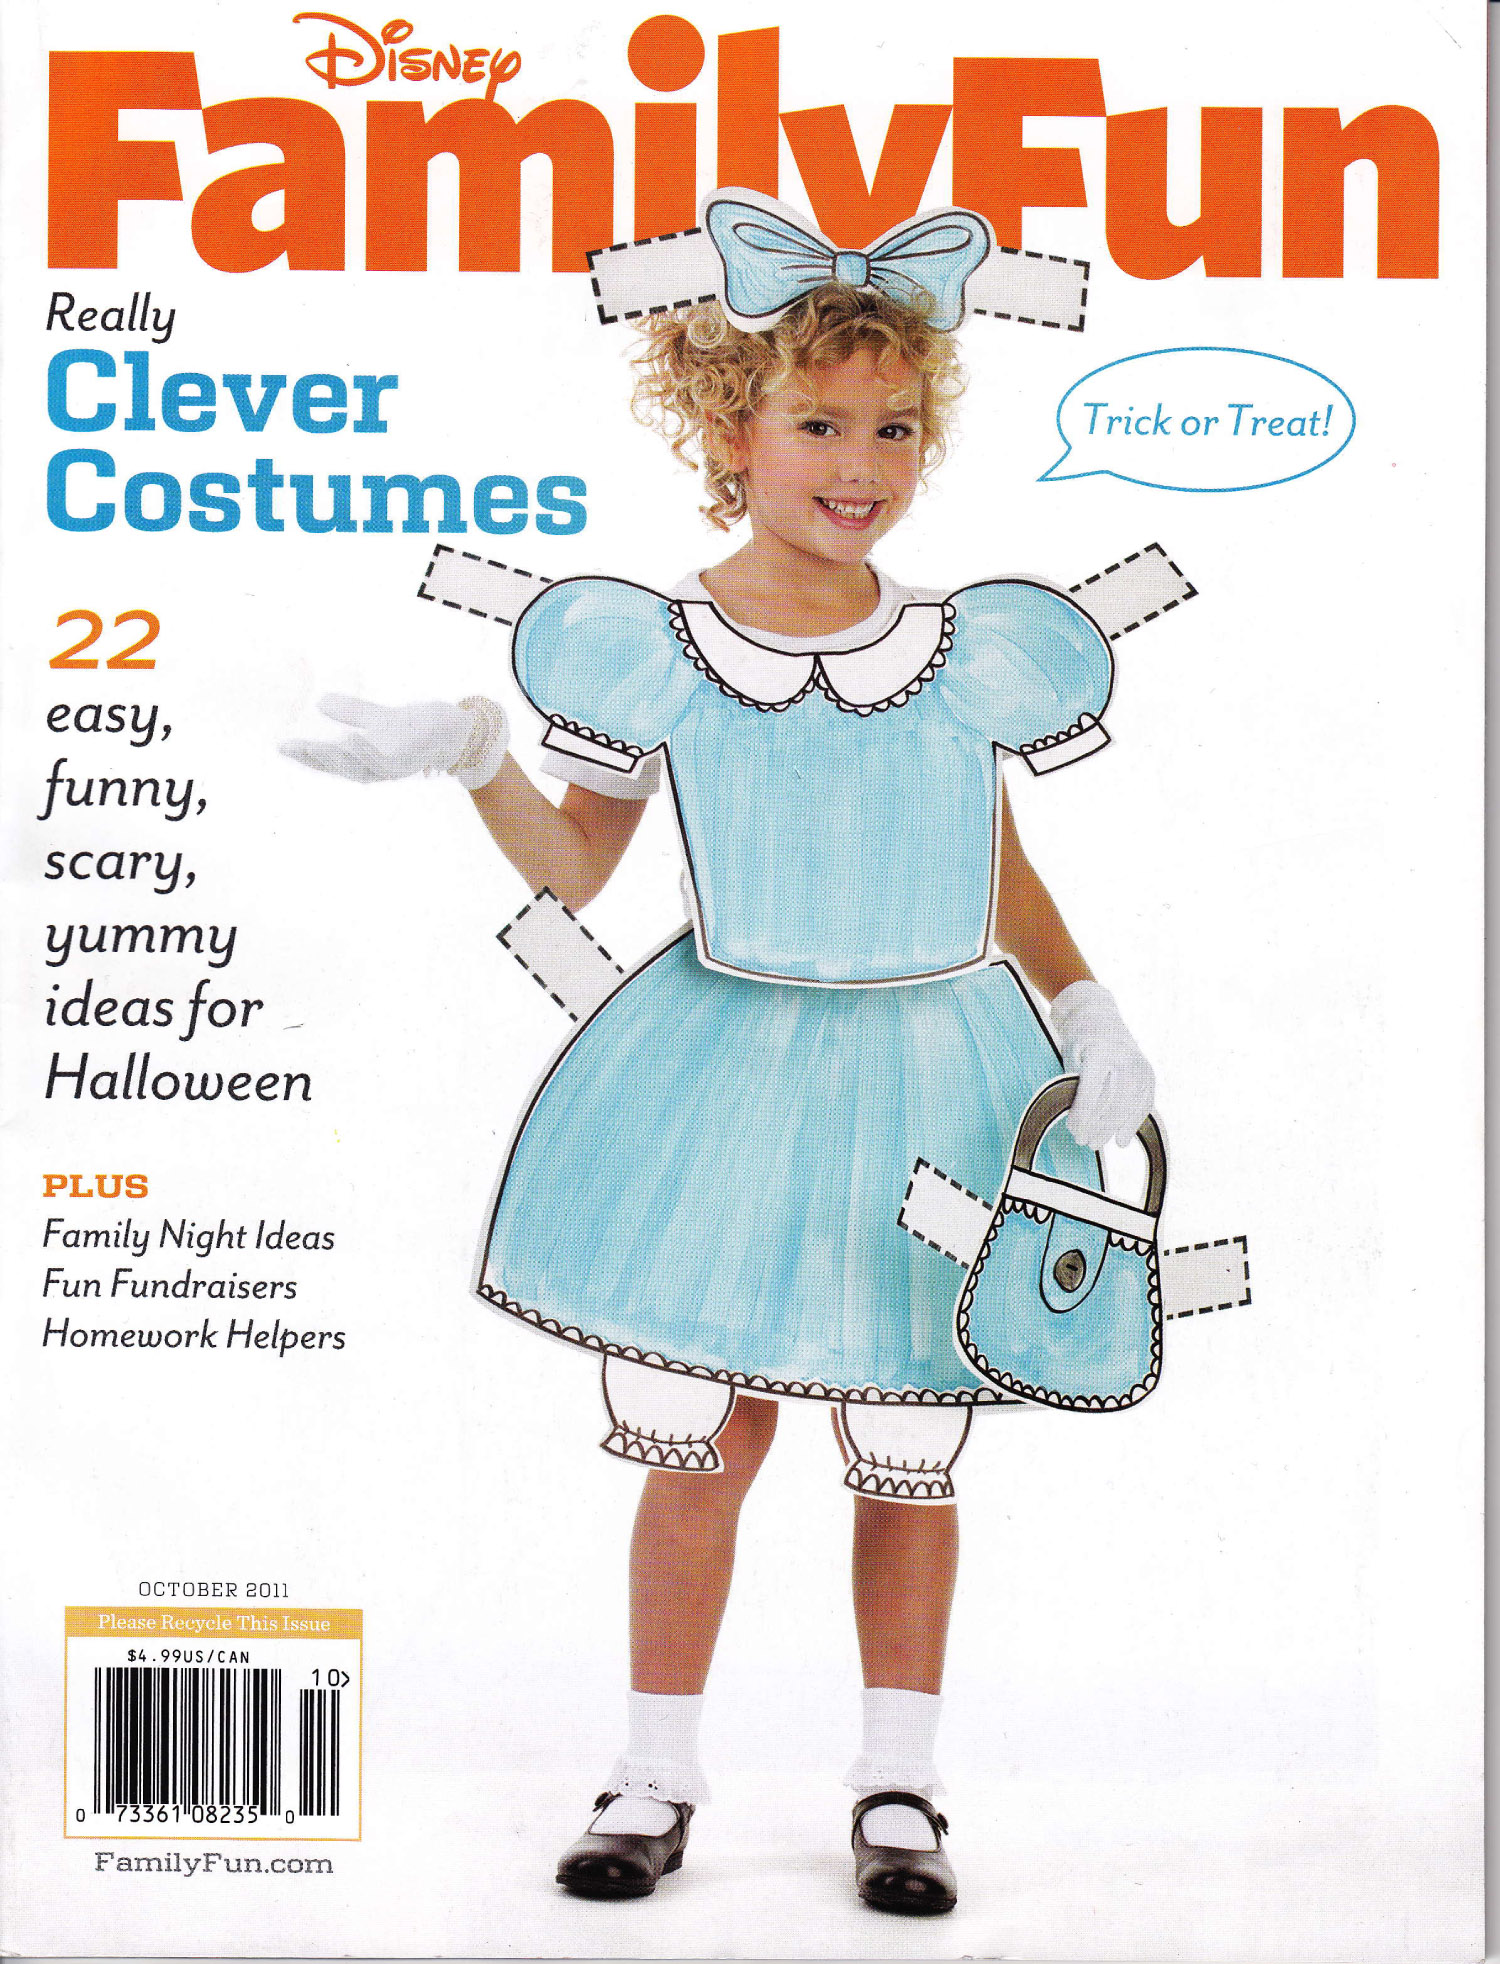 Family Chic Pumpkins In Family Fun Magazine | Family Chic by Camilla ...